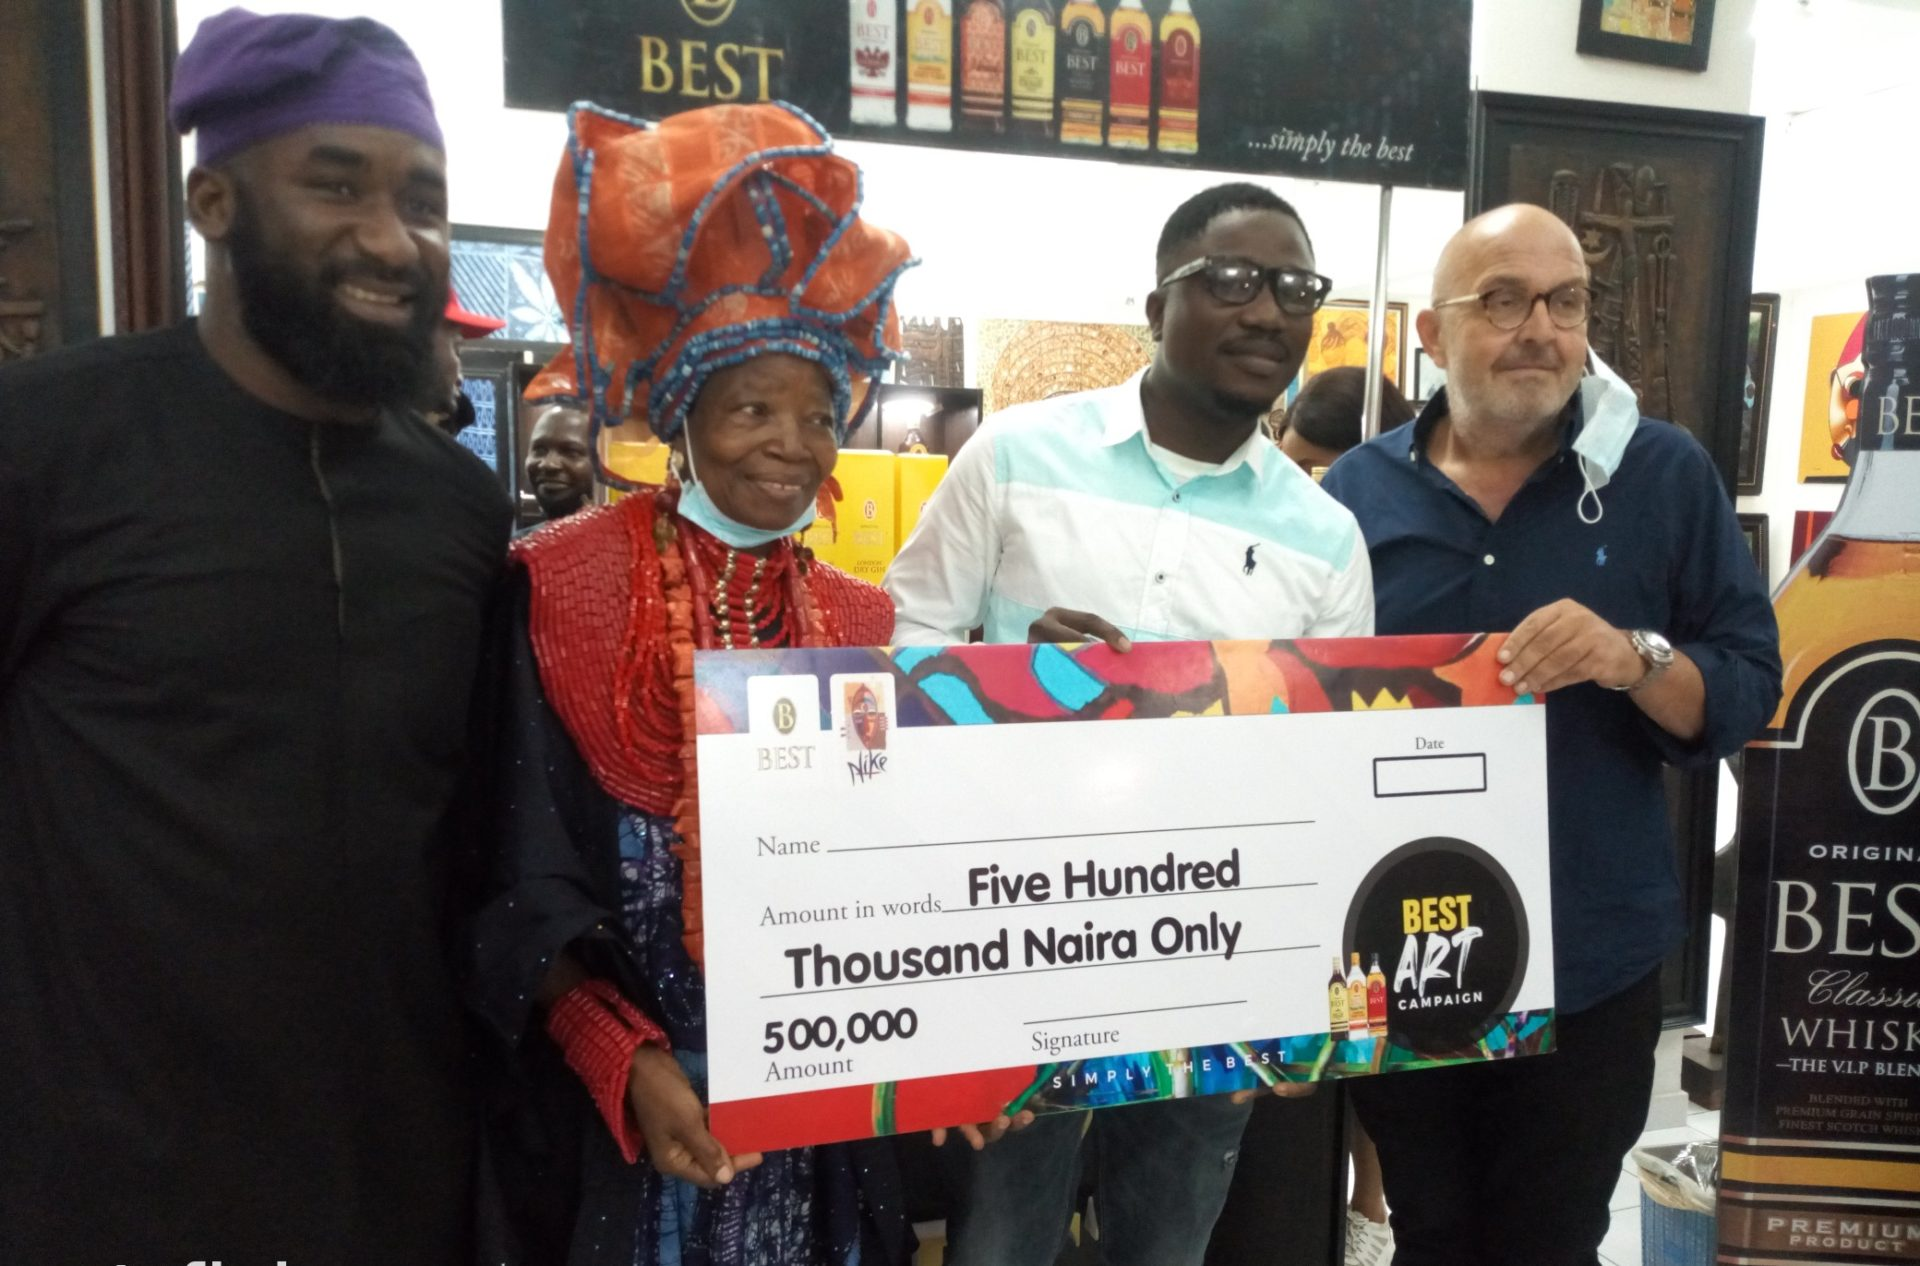 From right: Managing Director of Best, Heiko Arjes; Artist, Adewale Ojo, 1st Prize winner of Best Art Exhibition contest; Chief Dr (Mrs.) Nike Okundaye-Davies, Artist and proprietor of Nike Art Gallery; and Funbi Funbi, OAP/Comedian, during the Best Art Exhibition at Nike Art Gallery, Lagos.